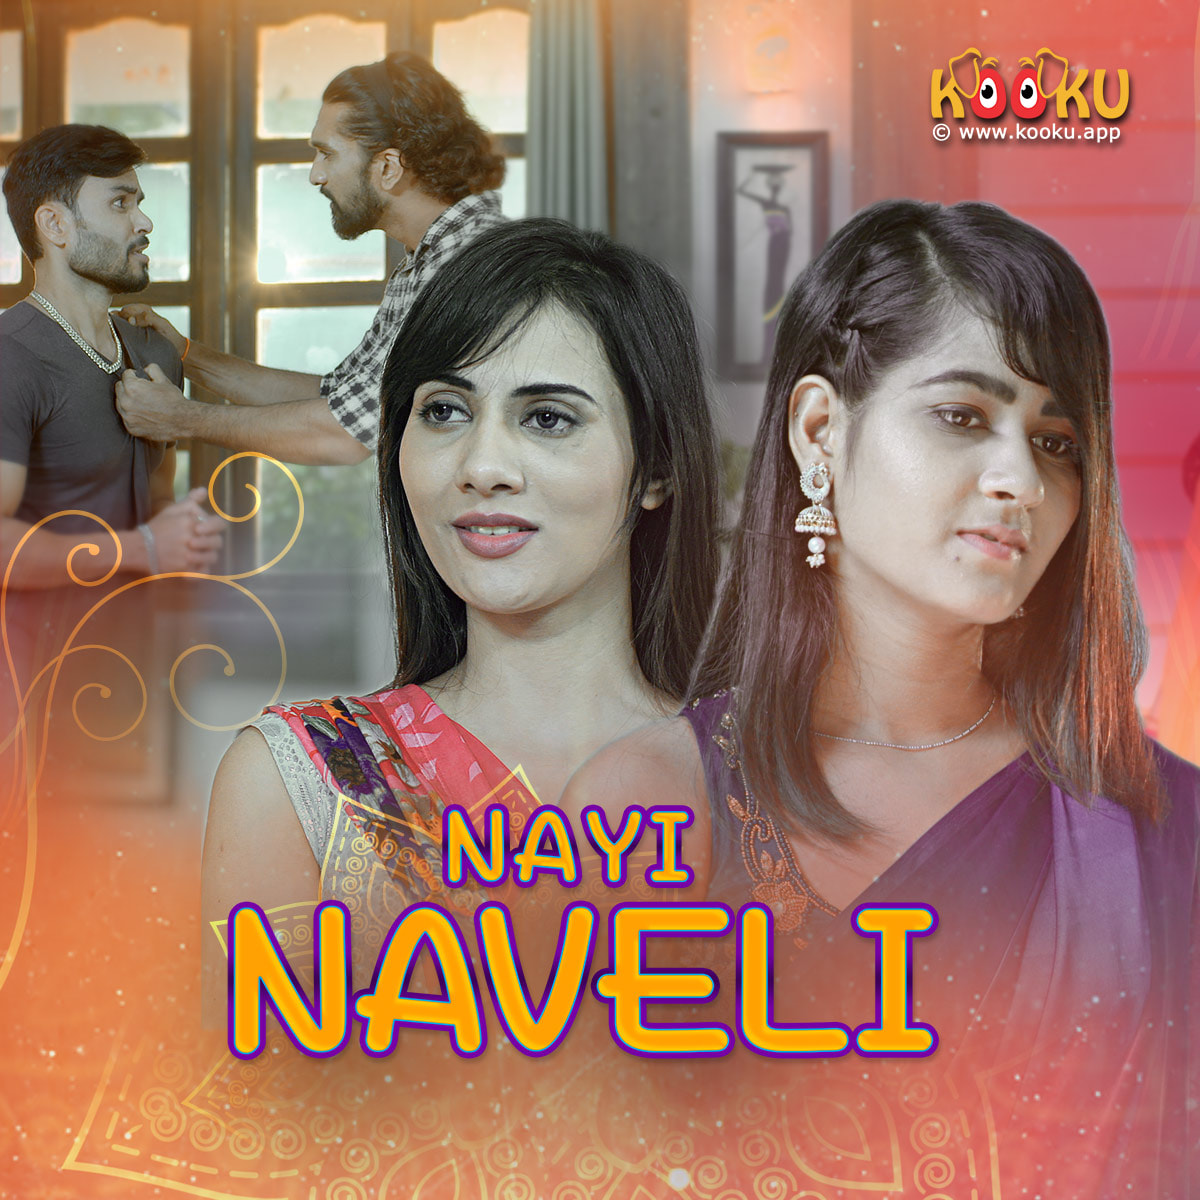 18+ Nayi Naveli (2021) S01 Hindi Kooku App Original Complete Web Series 720p HDRip 250MB Download